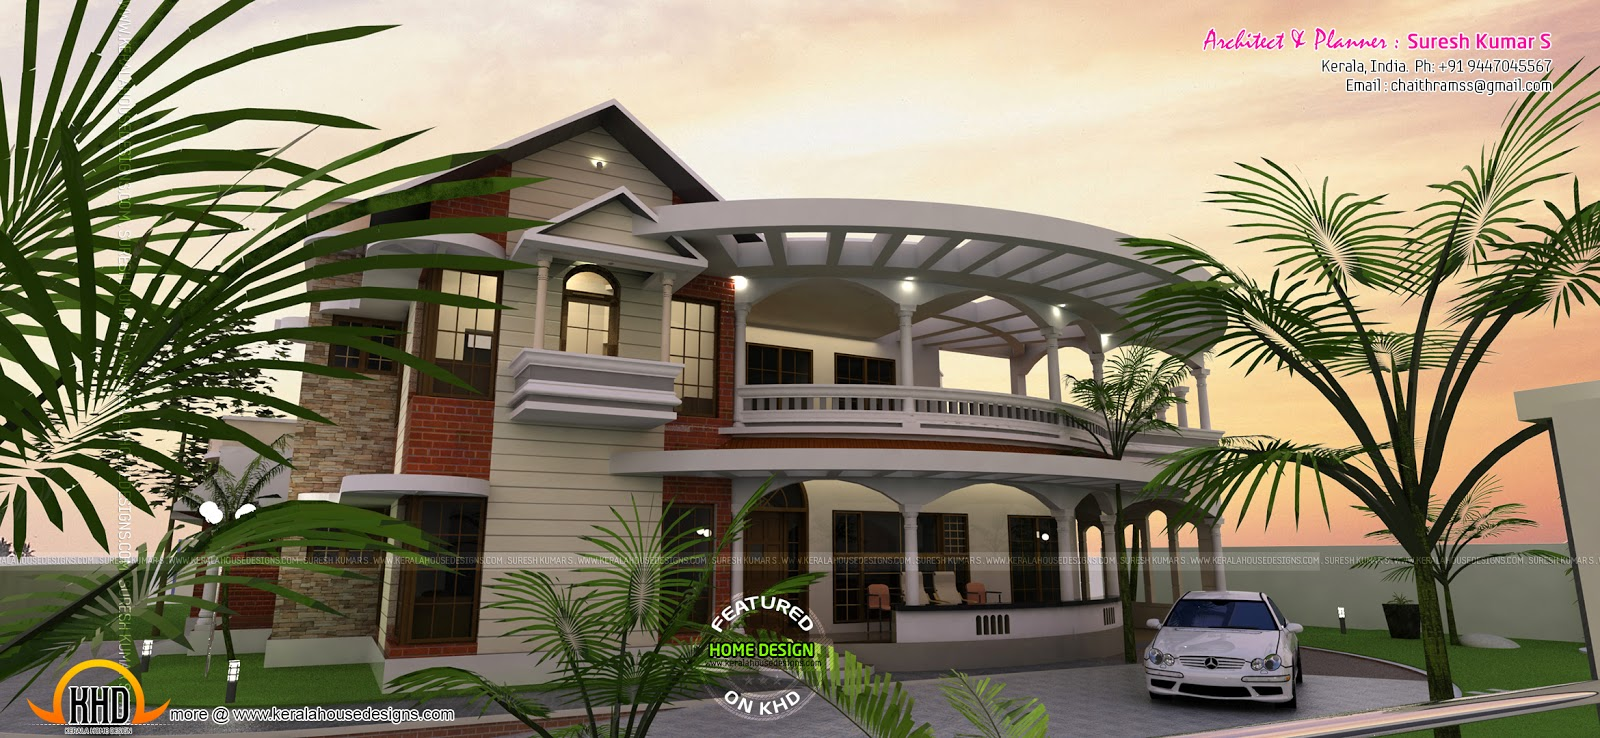 Exterior house plans with balconies for Exterior house design with balcony